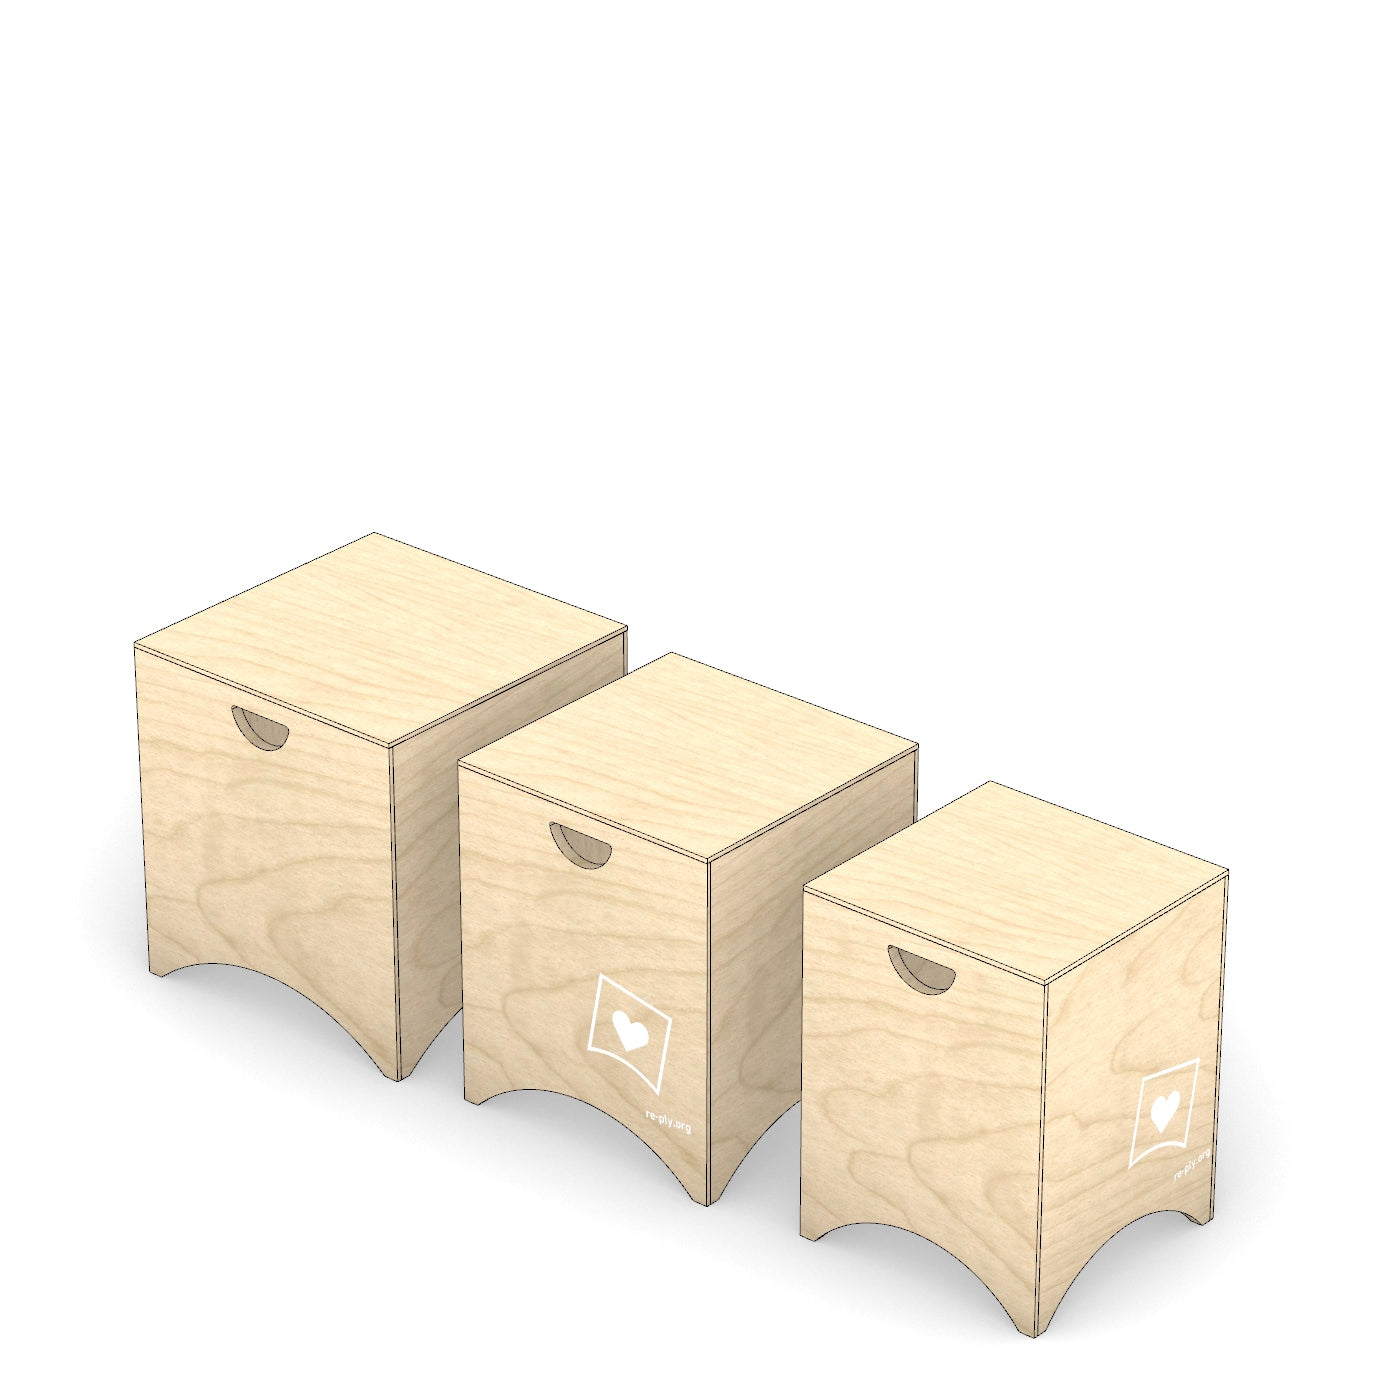 Stool - nesting (set of 3) - from $198